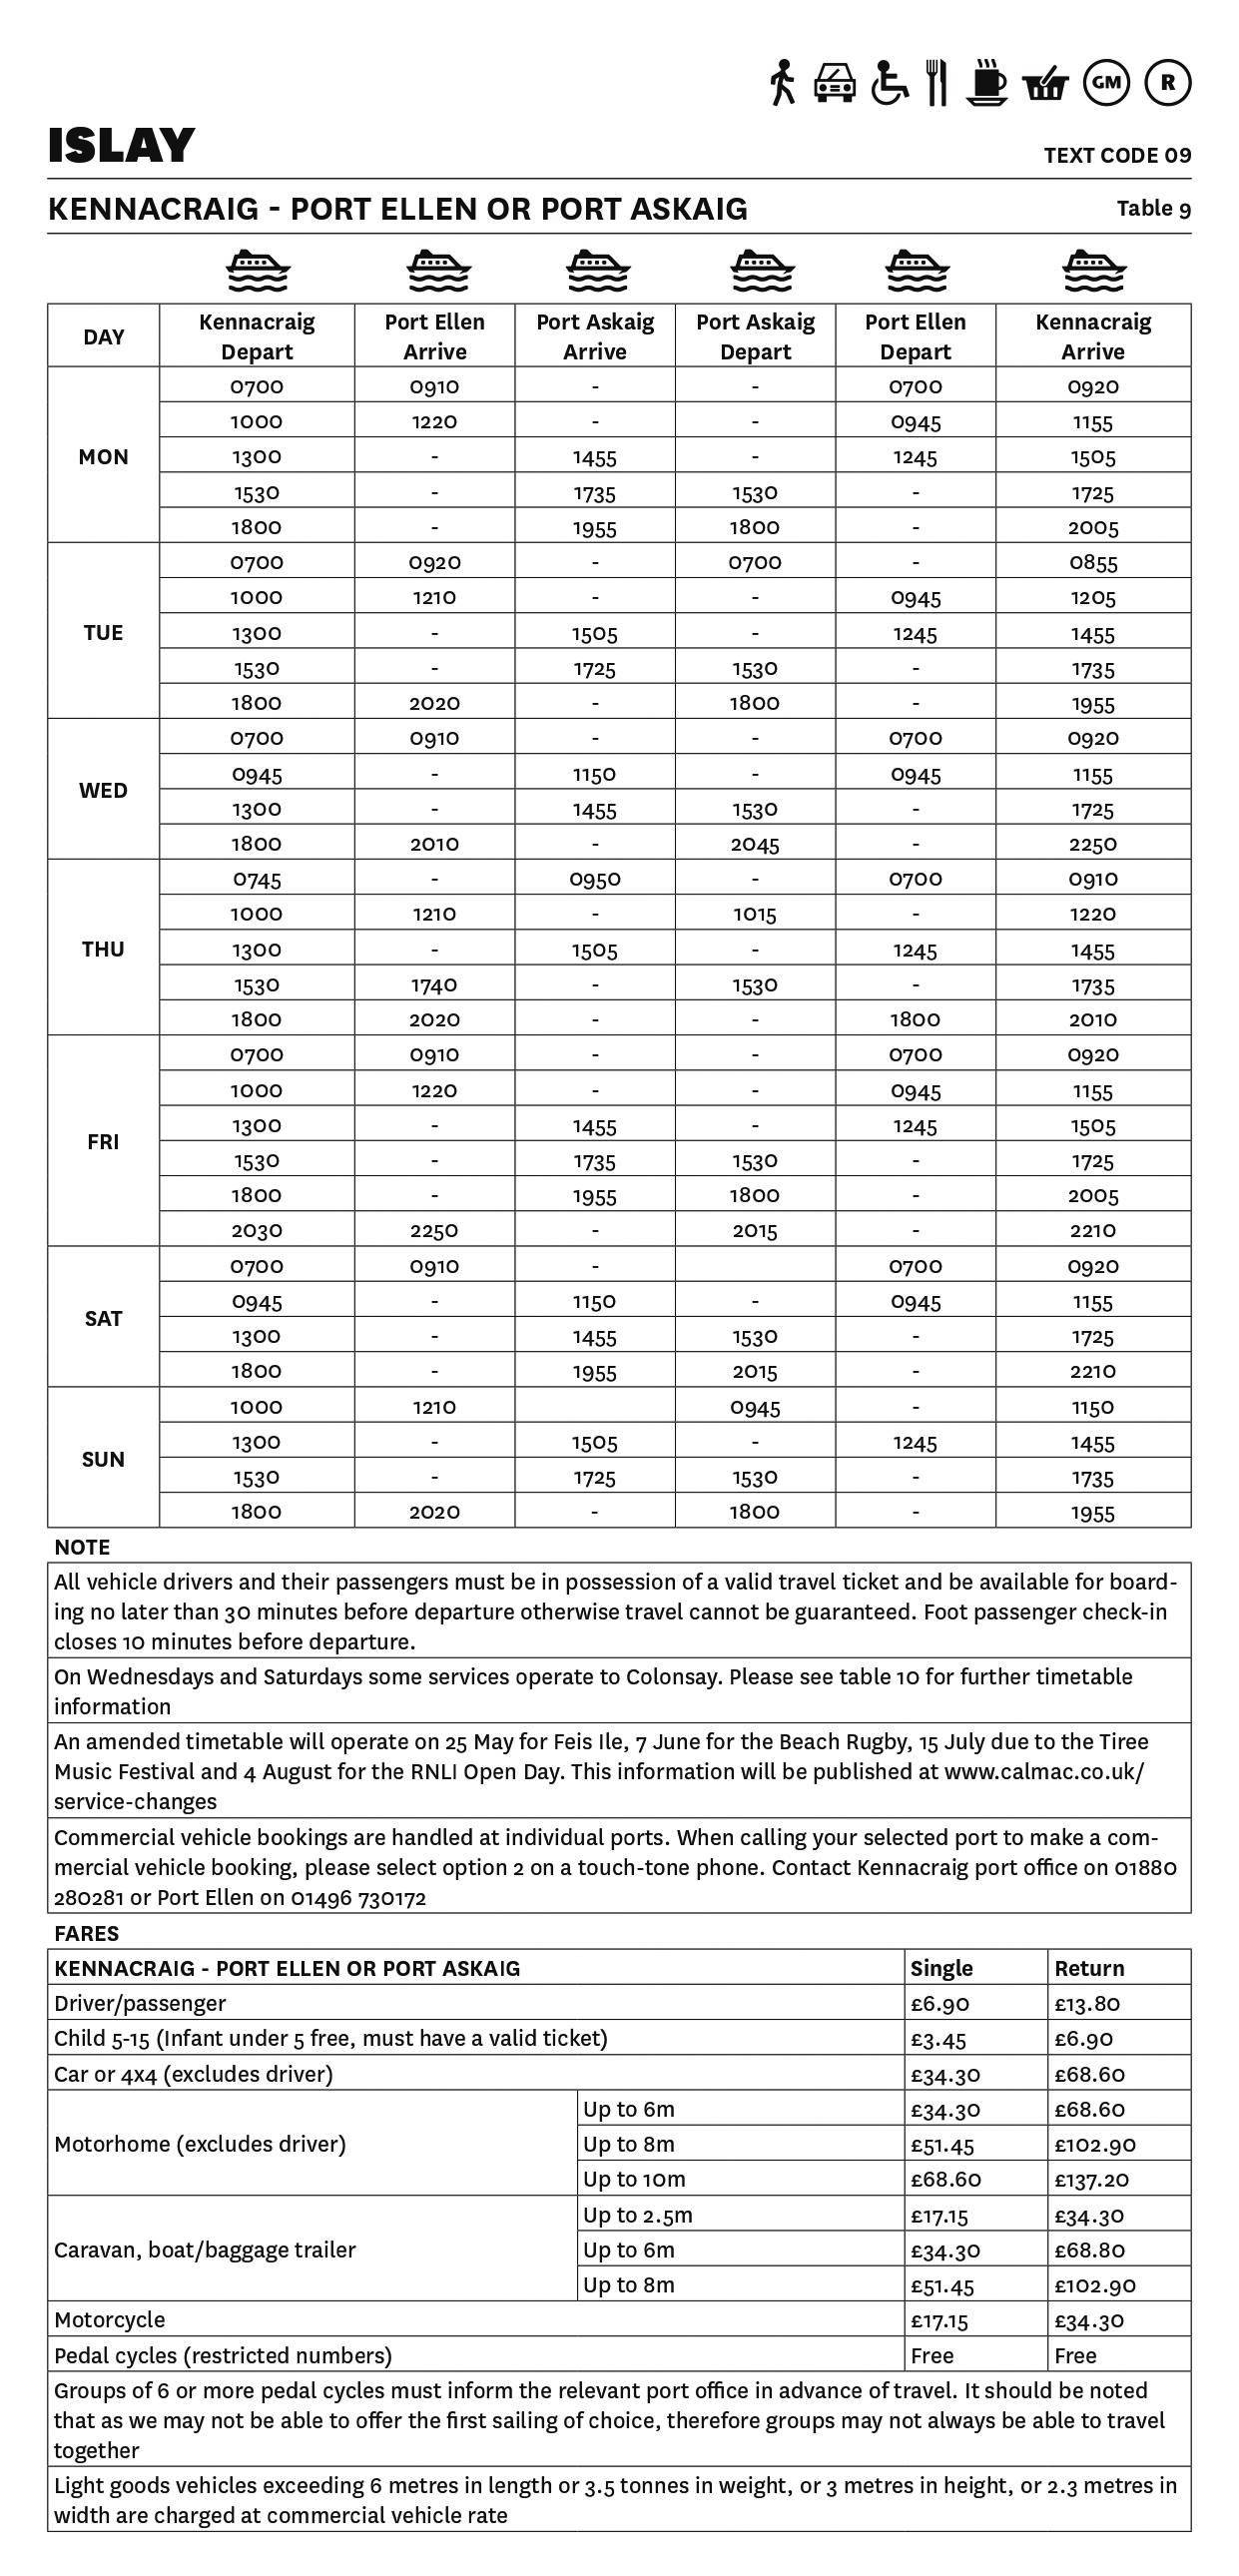 Kennacraig - Port Ellen or Port Askaig Summer timetable 2019